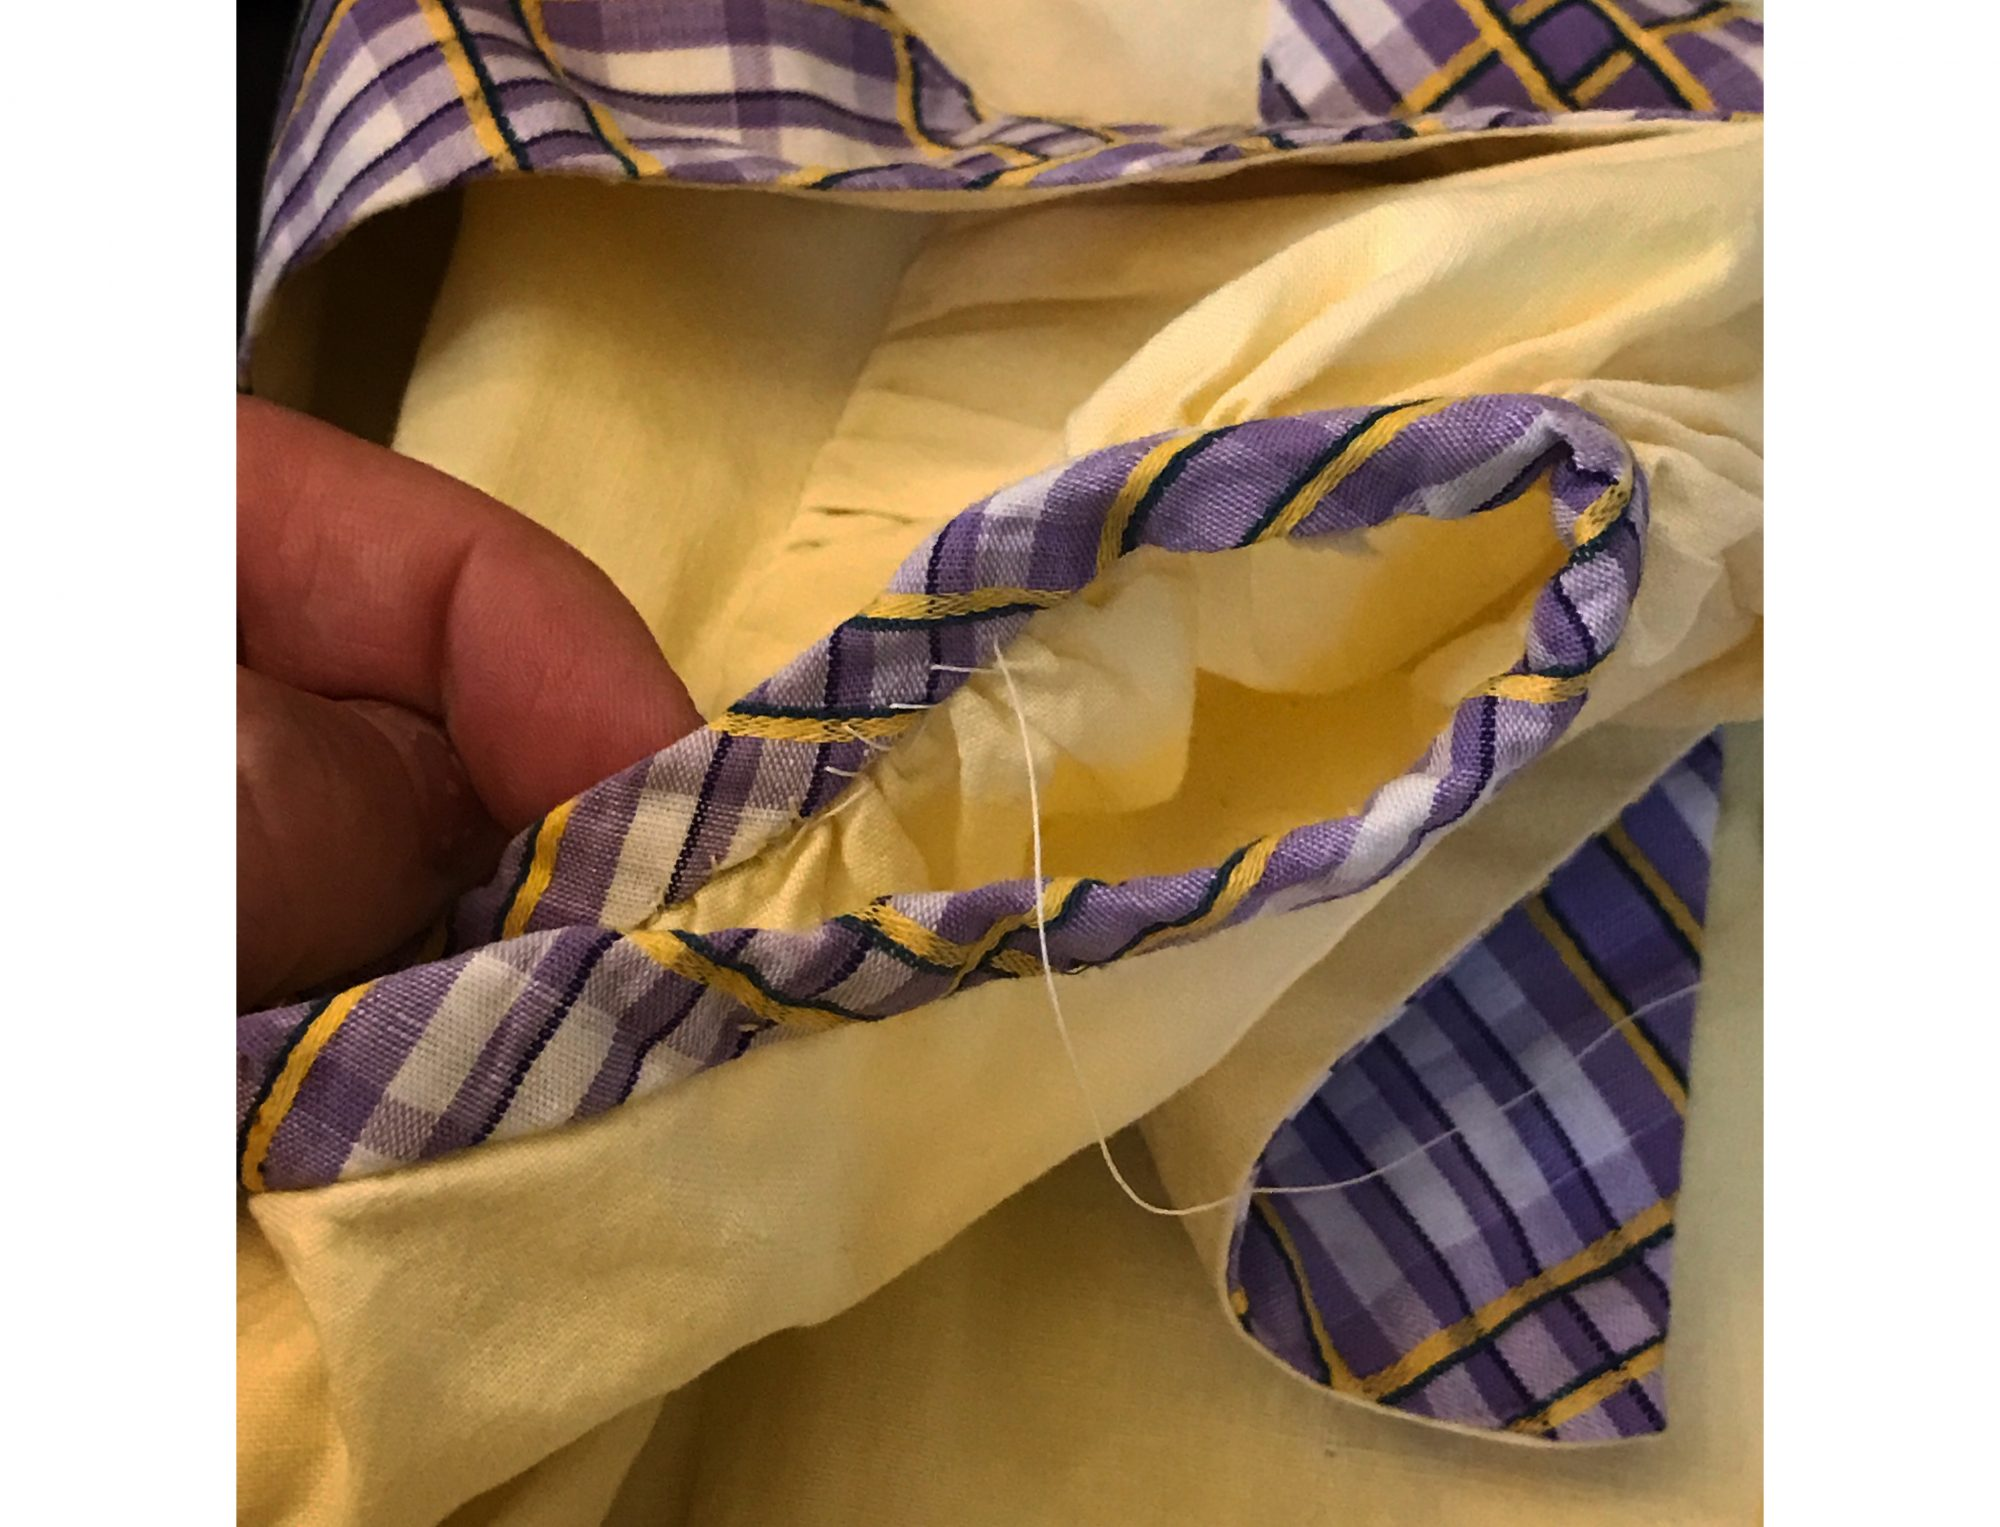 Sewing Purple and Yellow Heirloom Dress